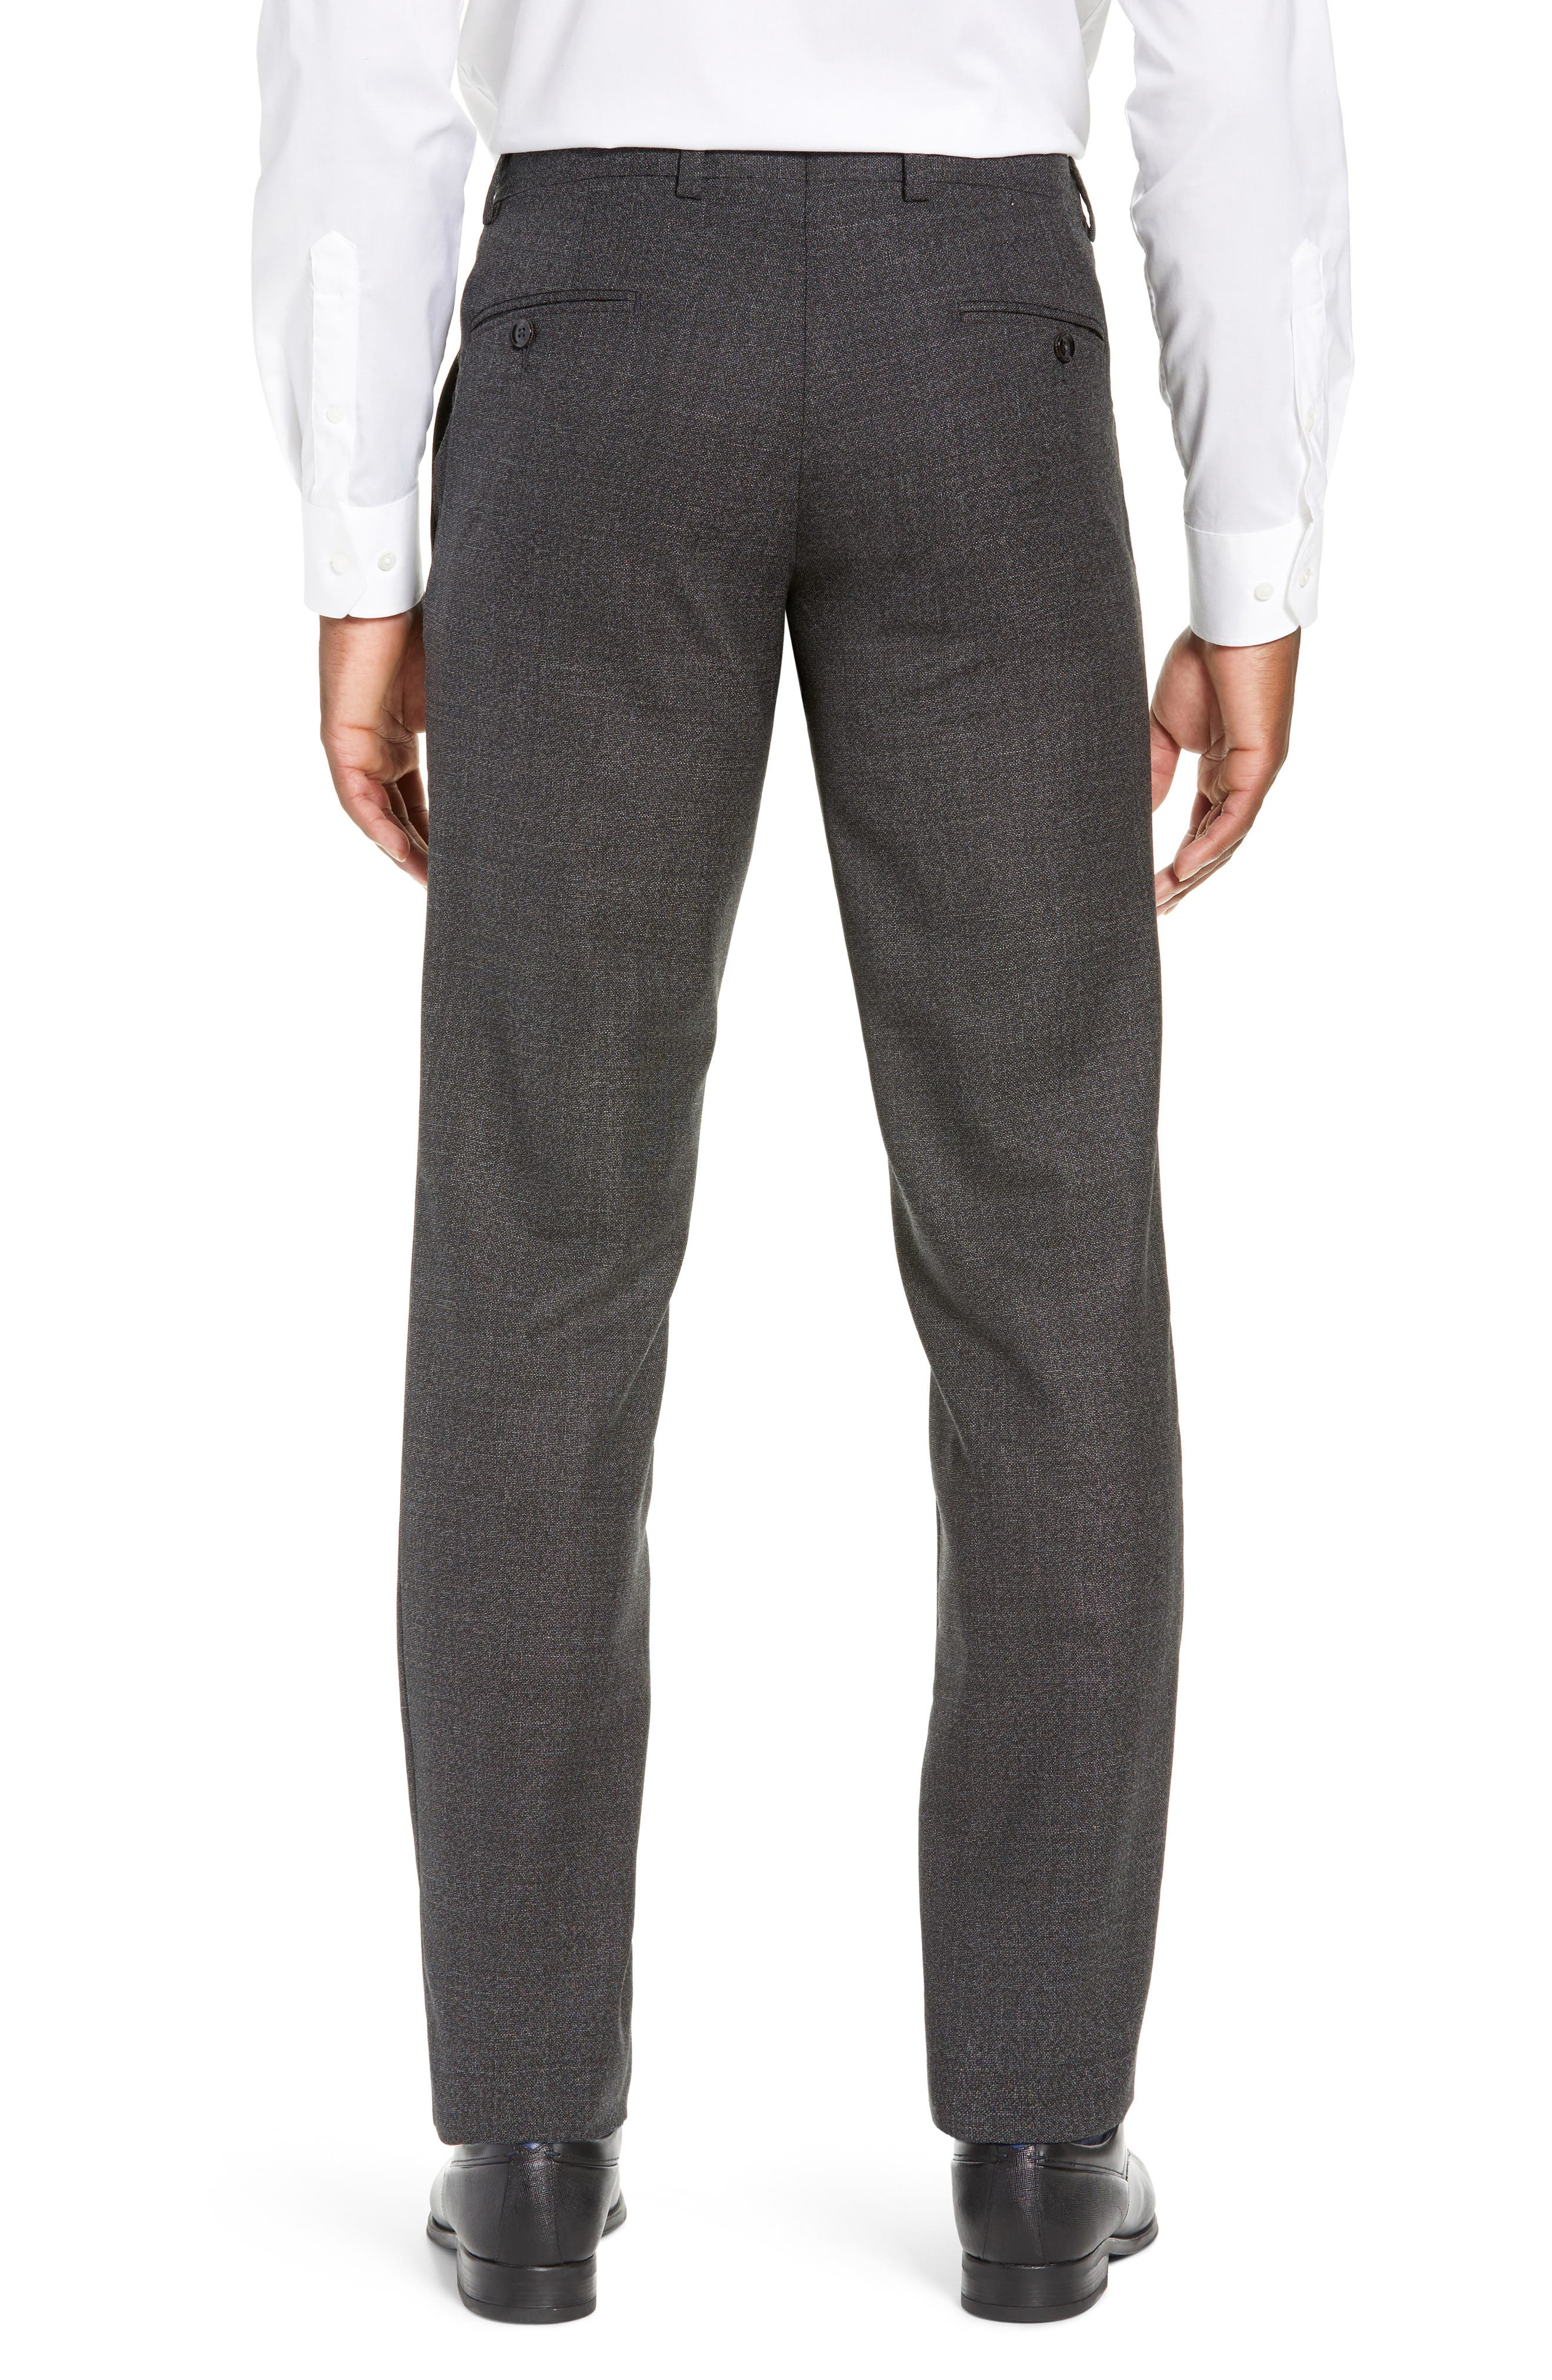 TED BAKER LONDON, Jerome Flat Front Solid Wool Trousers, Alternate thumbnail 2, color, CHARCOAL